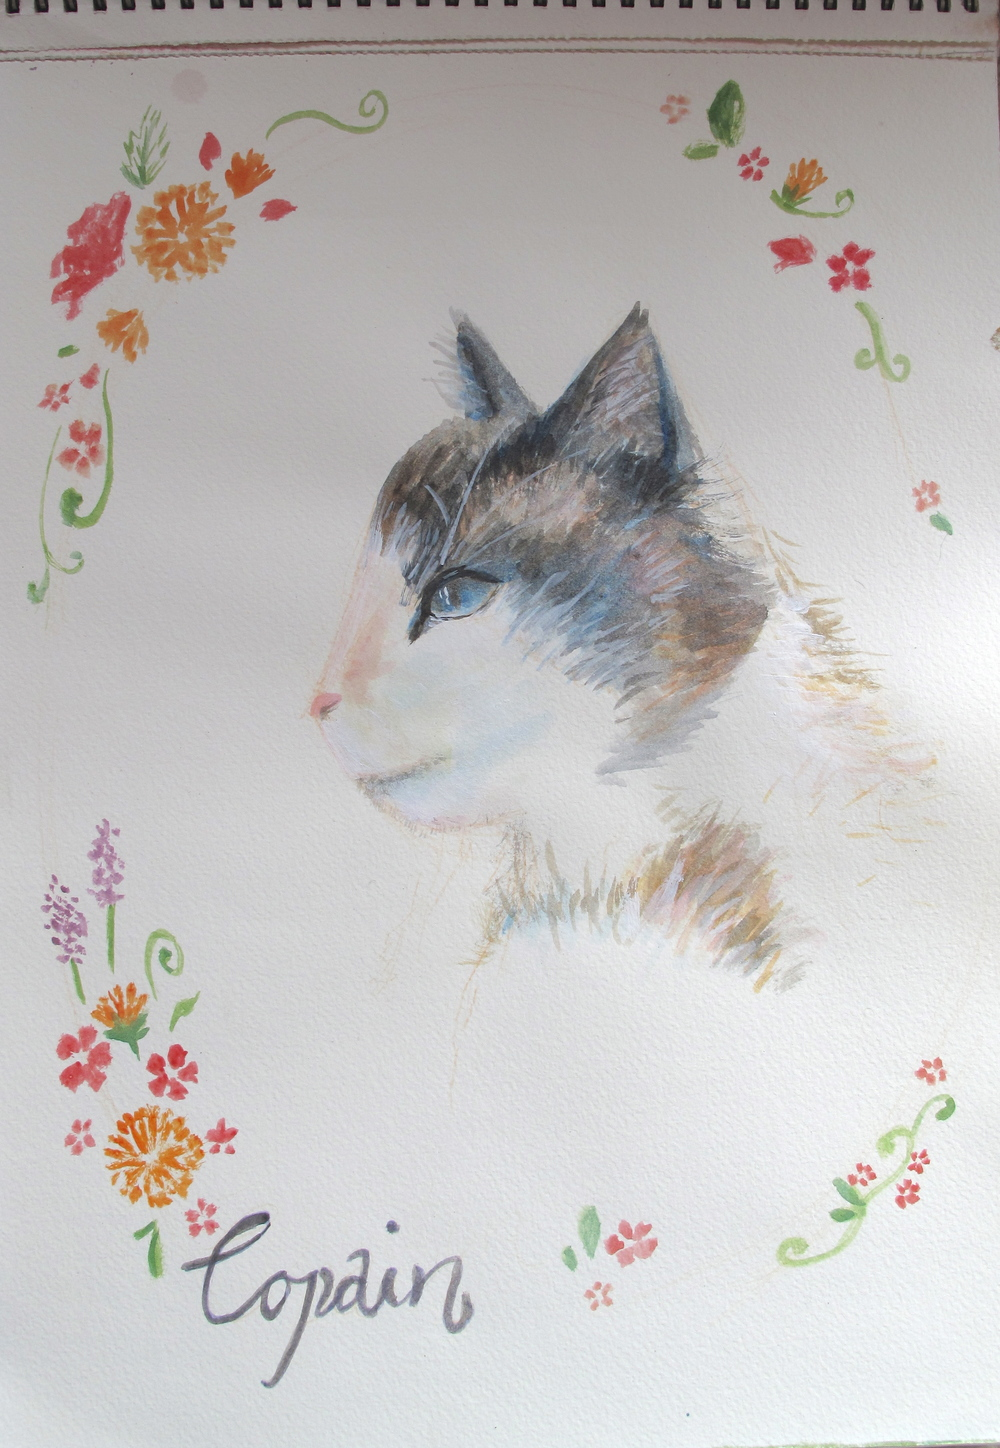 Copain the cat - painting by Zoe